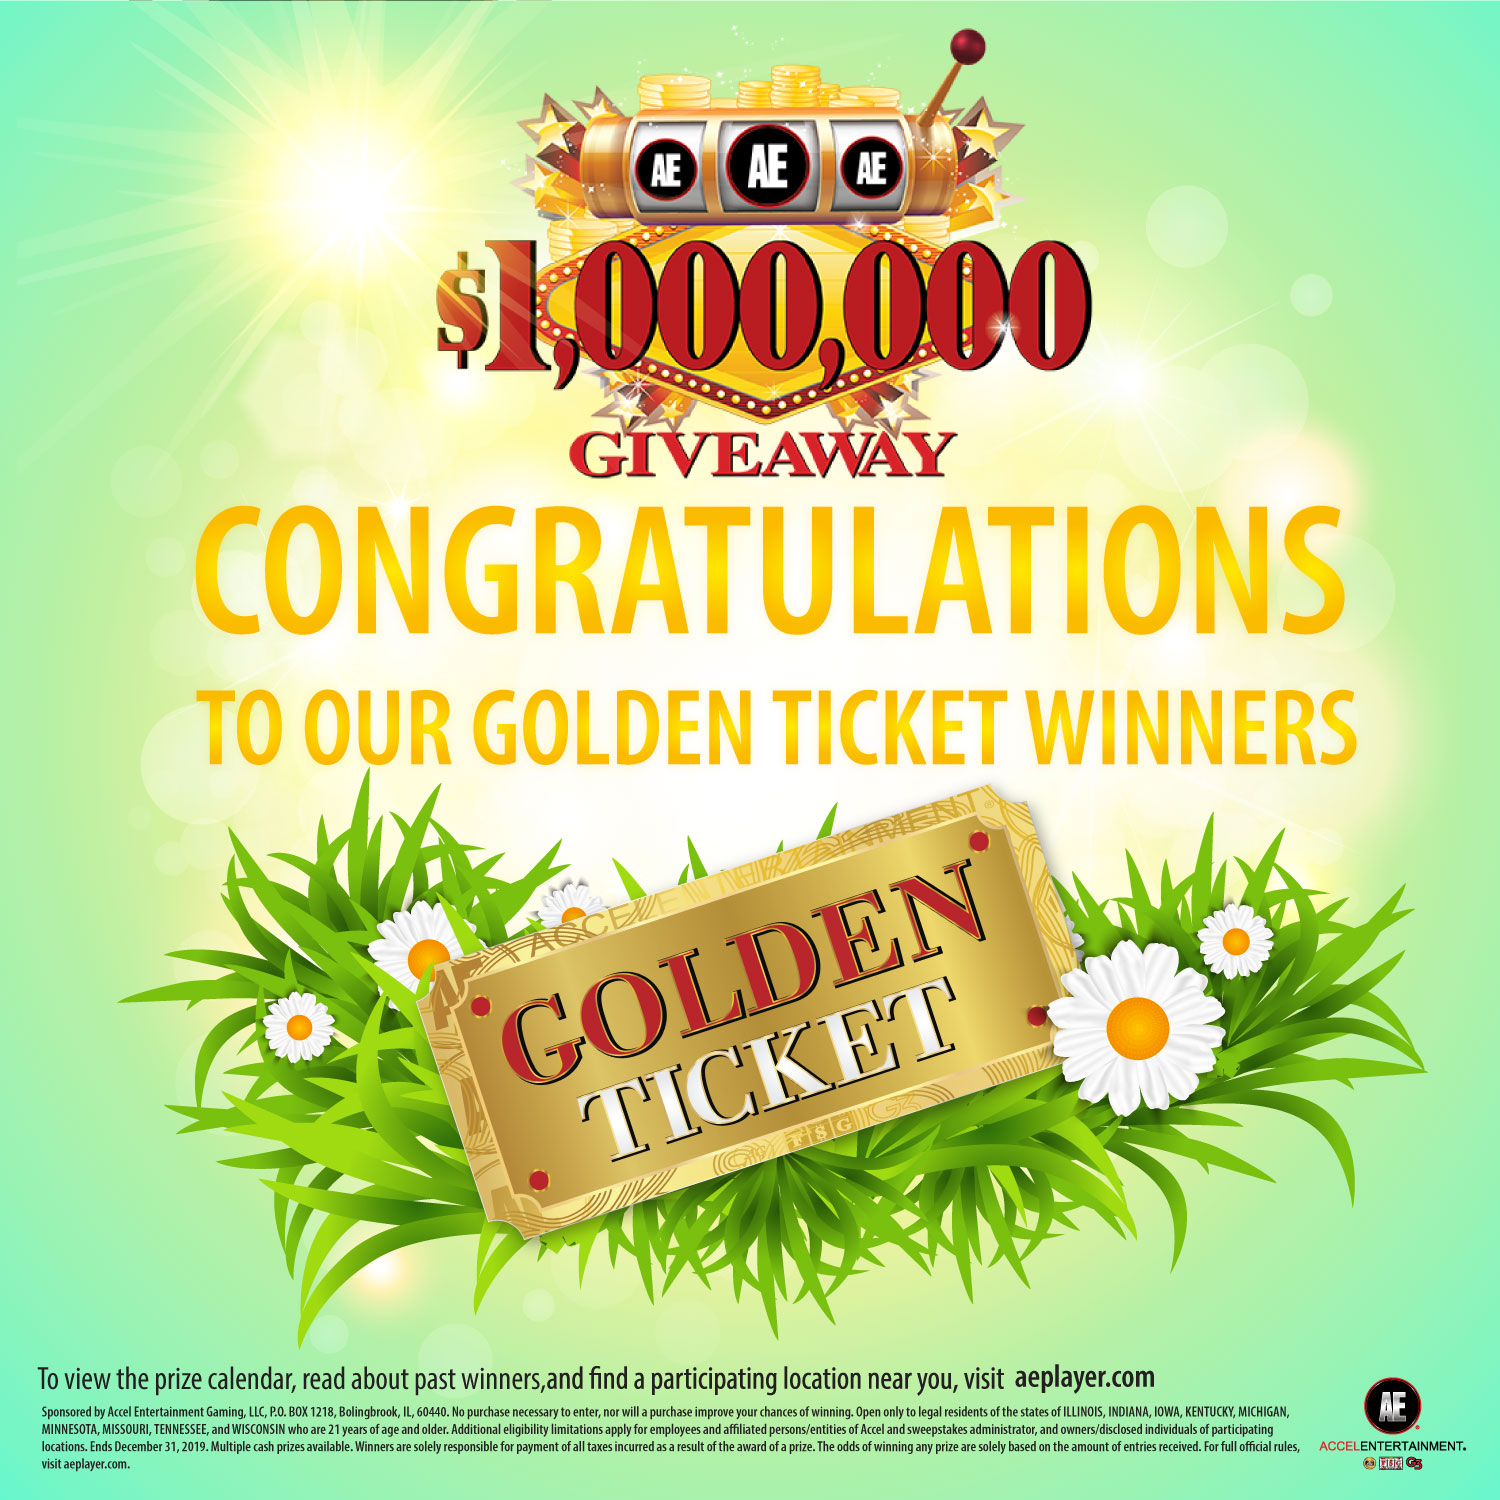 GoldenTicketWinner#3